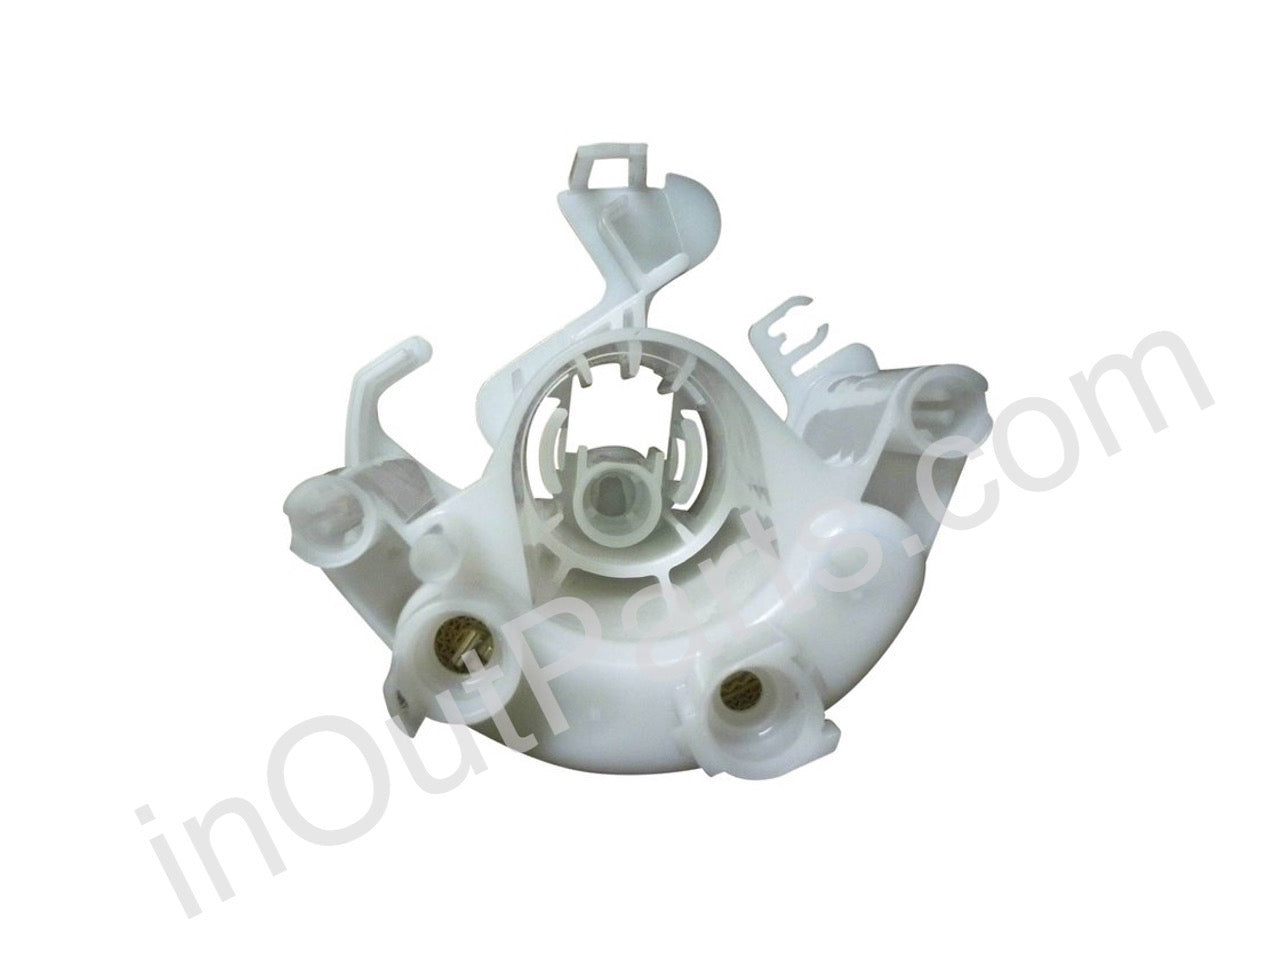 Fuel Filter Fits Toyota Harrier Kluger 1mzfe 2azfe 2003 2004 2005 Corolla Location 2006 2007 2008